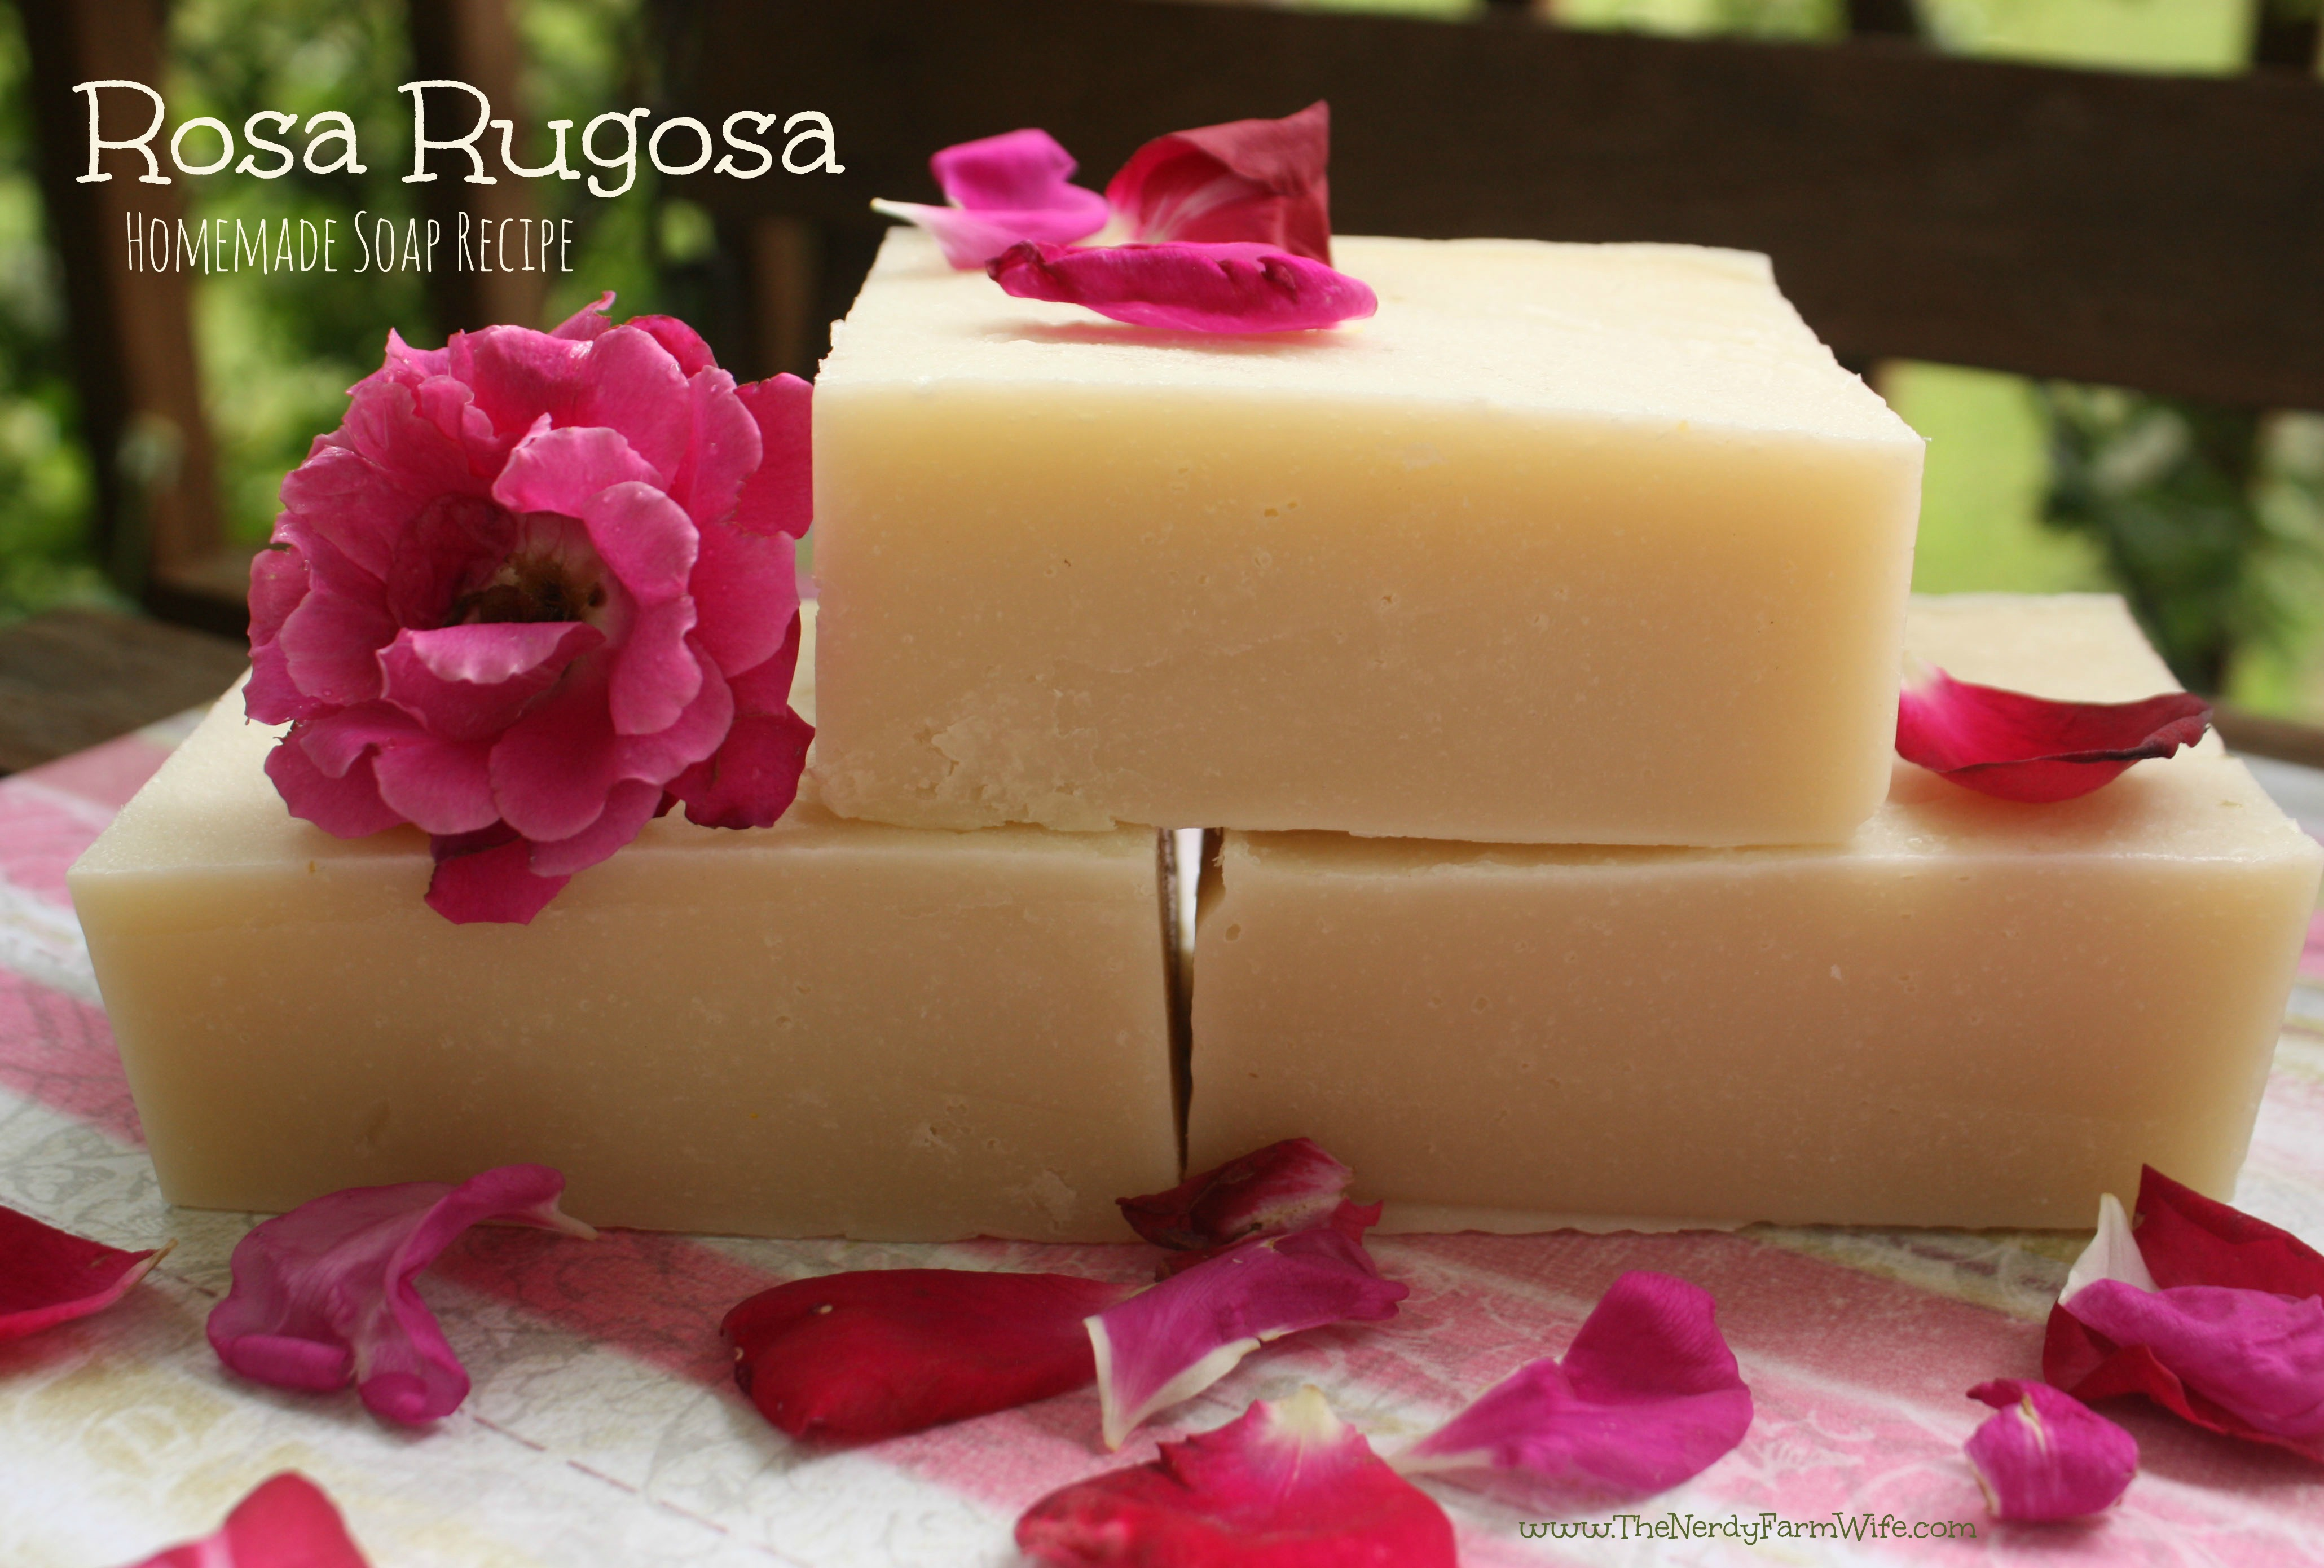 Rosa Rugosa Homemade Palm Free Soap Recipe